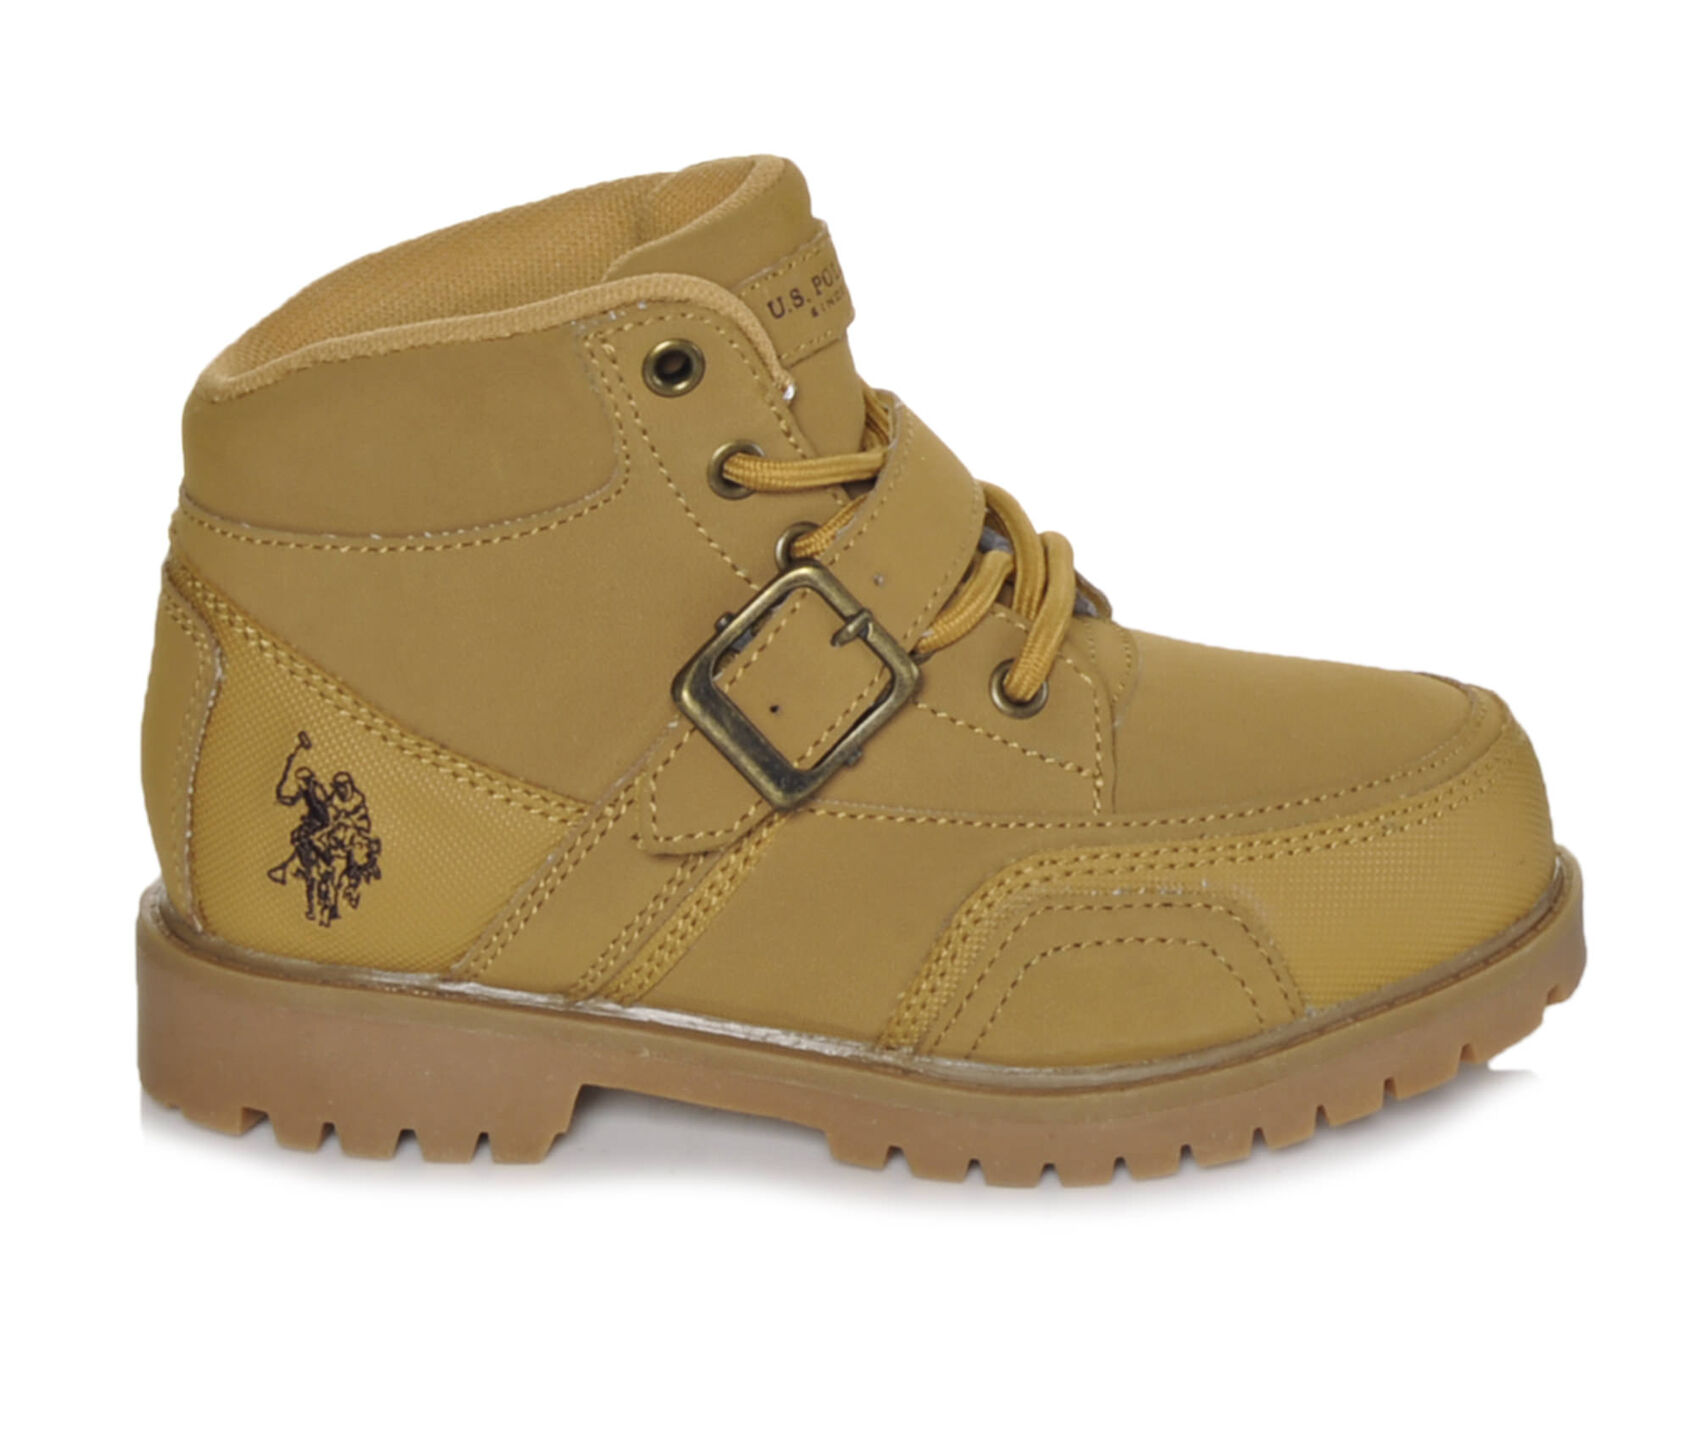 9c0bae5d968 Boys' US Polo Assn Little Kid & Big Kid Andes Boots